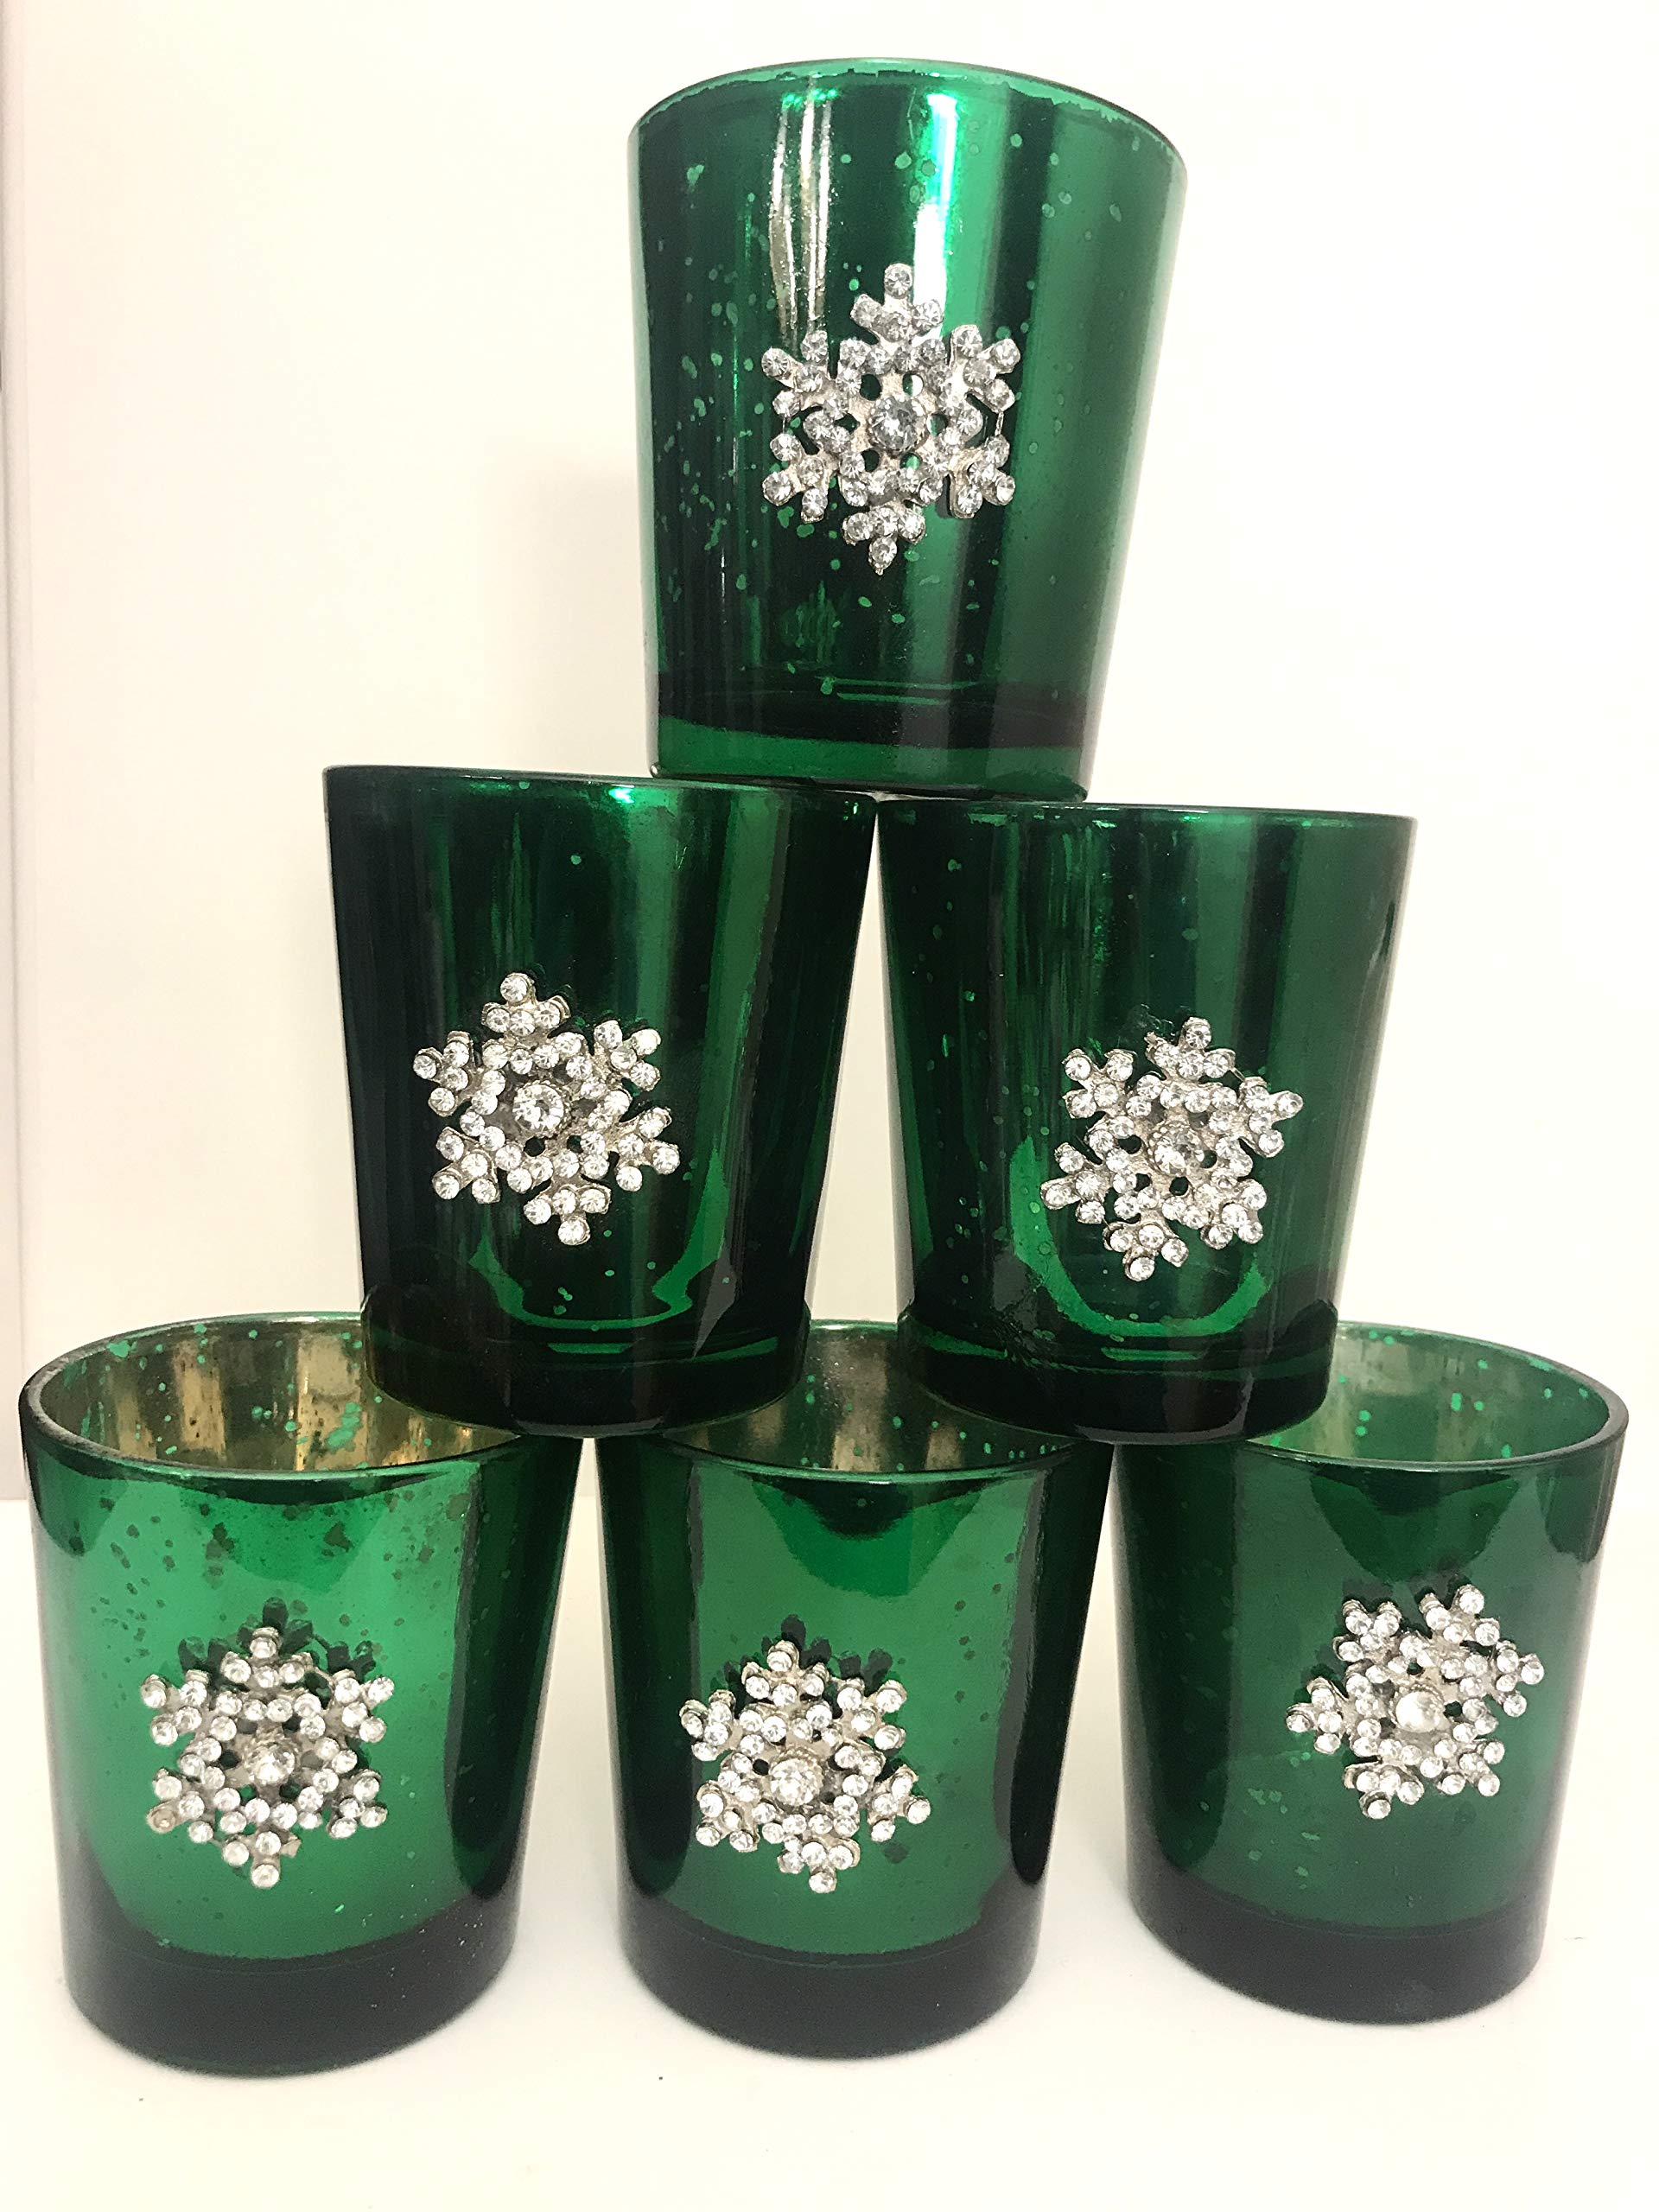 Candleholders Christmas Centerpiece Green Mercury Glass Mottled Snowflake Crystal Candleholders, Set of 6, 3 x 2 inches